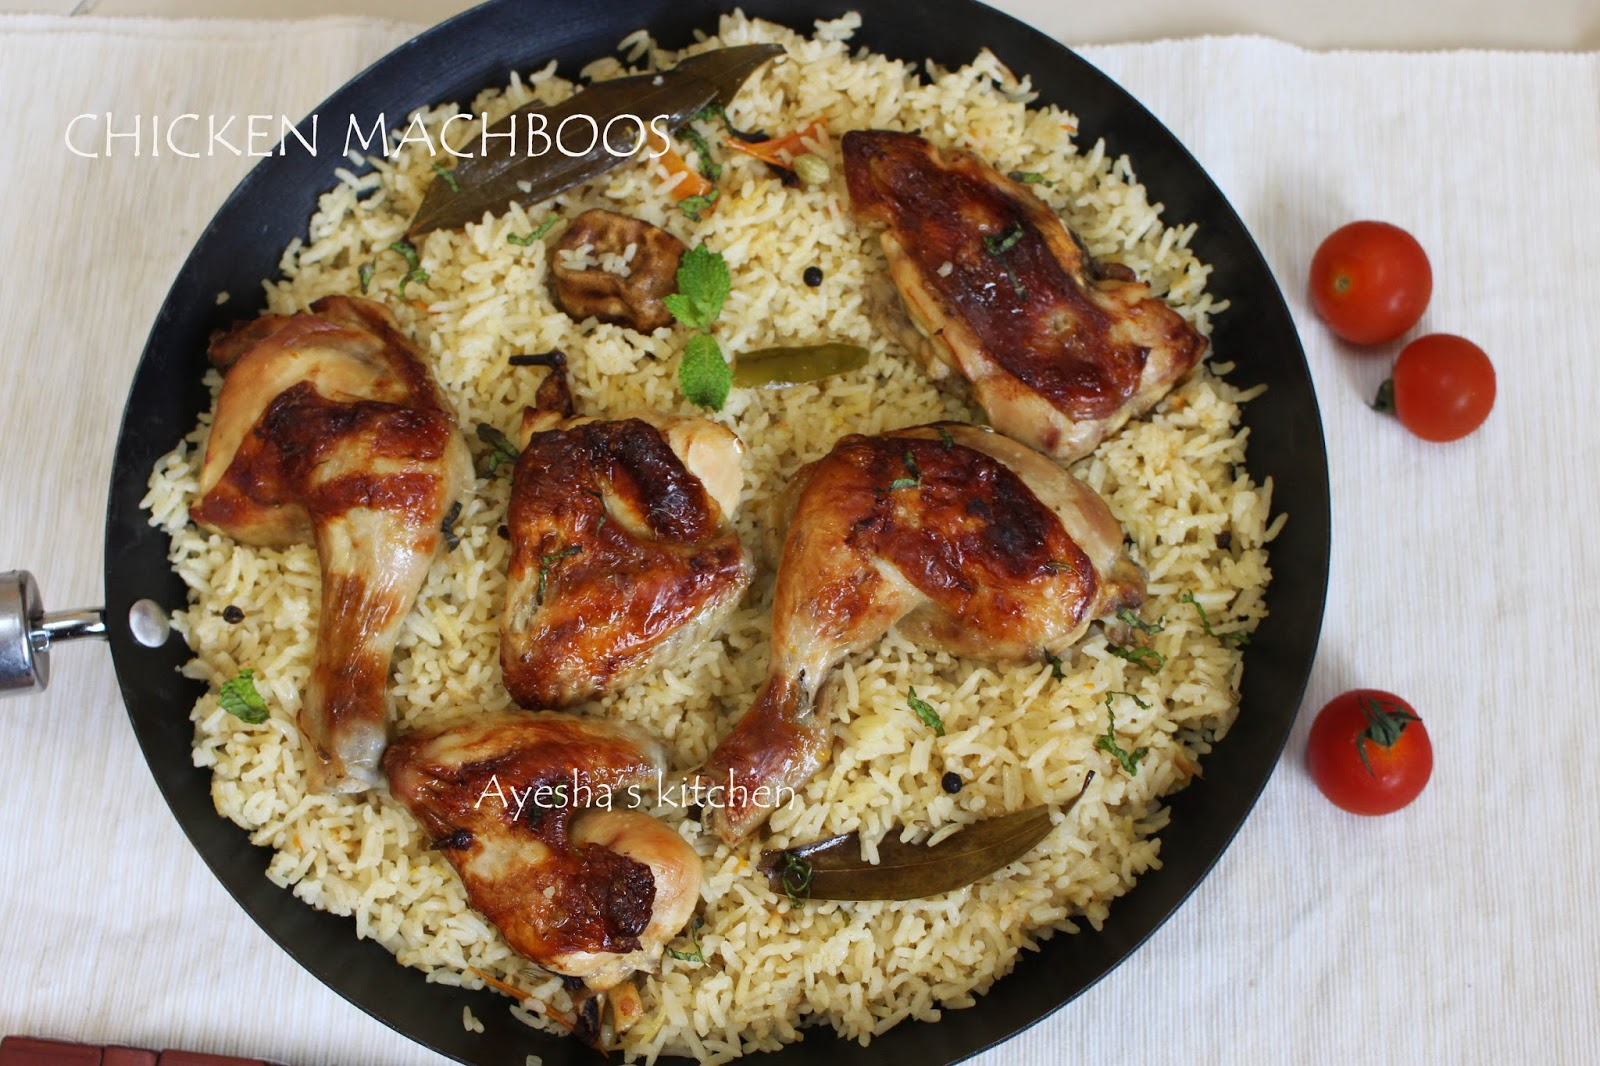 Easy rice recipes chicken machboos all arabic recipes have its own flavor because of arabic spices so here is the recipe showing how to make chicken machboos do try simple rice recipe forumfinder Images